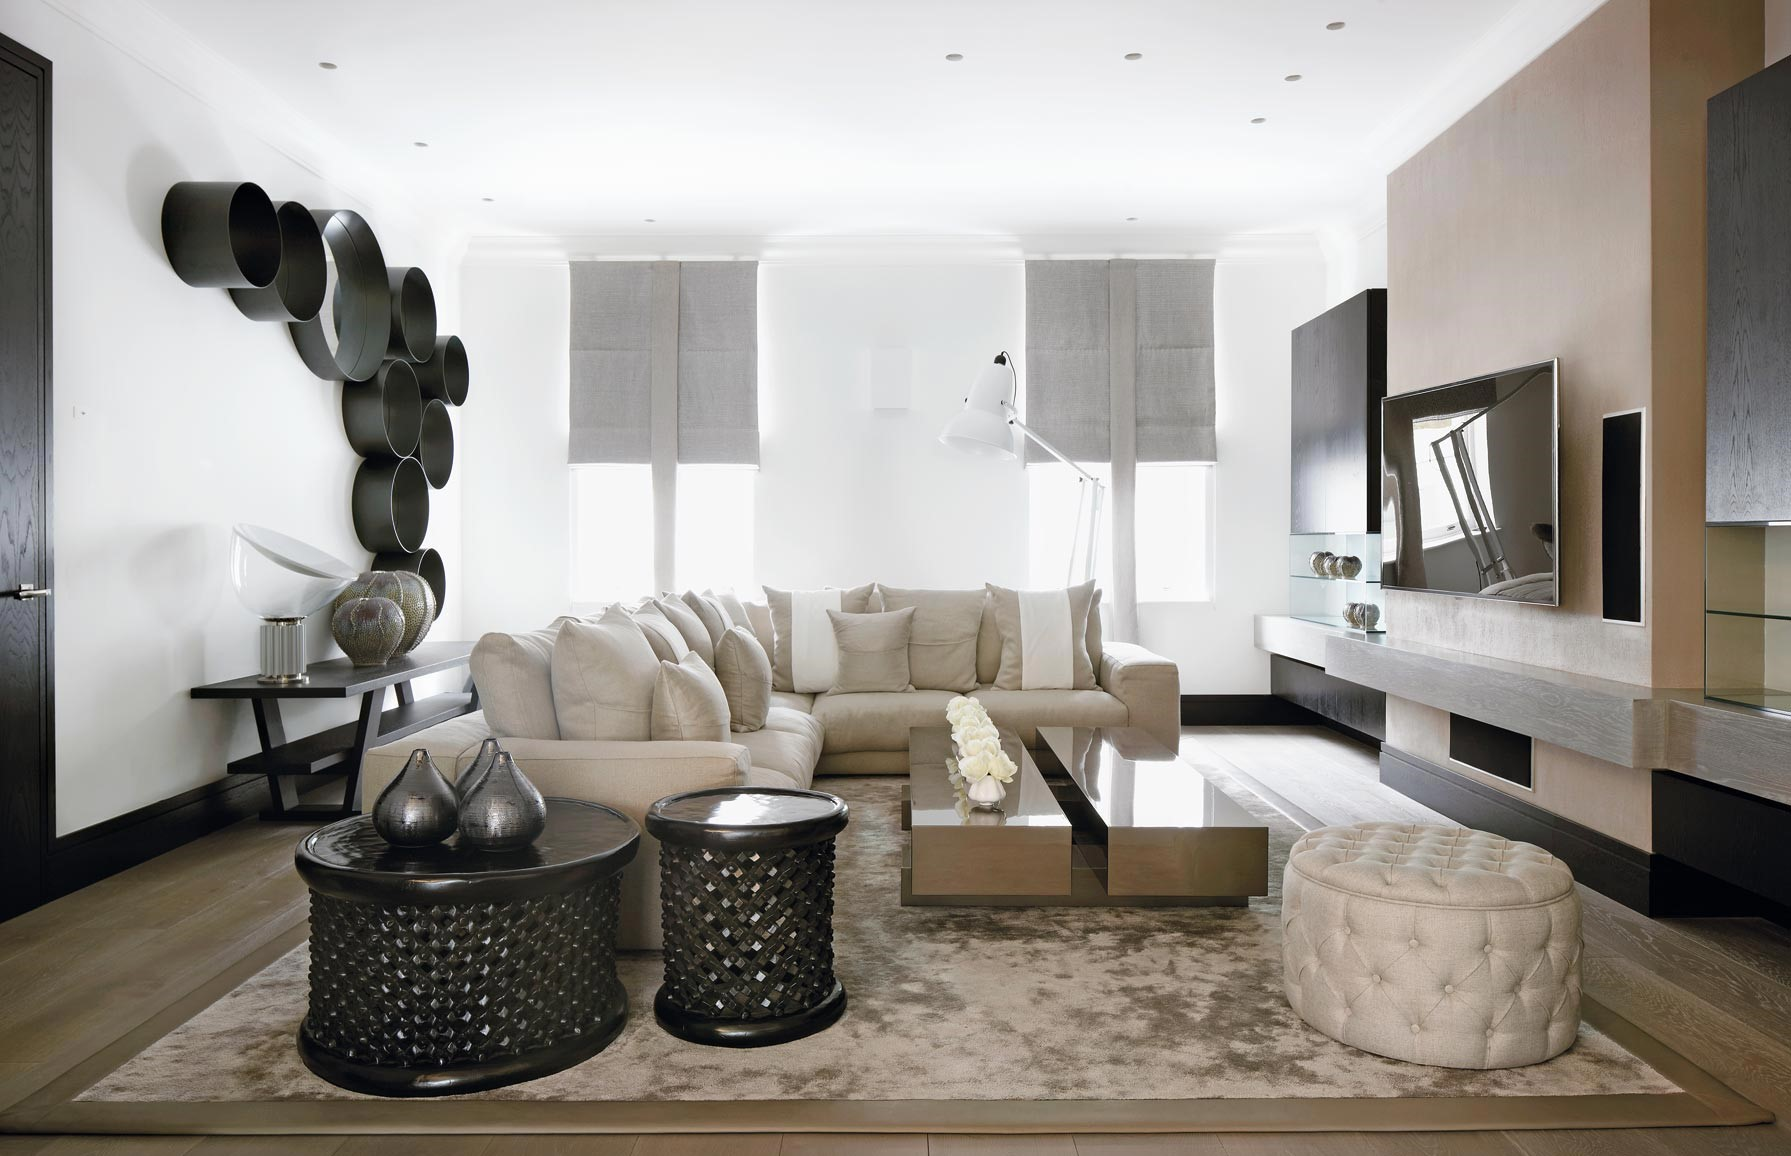 Family Home Living Room Design Kelly Hoppen Top 10 Kelly Hoppen Design  Ideas The Family Home